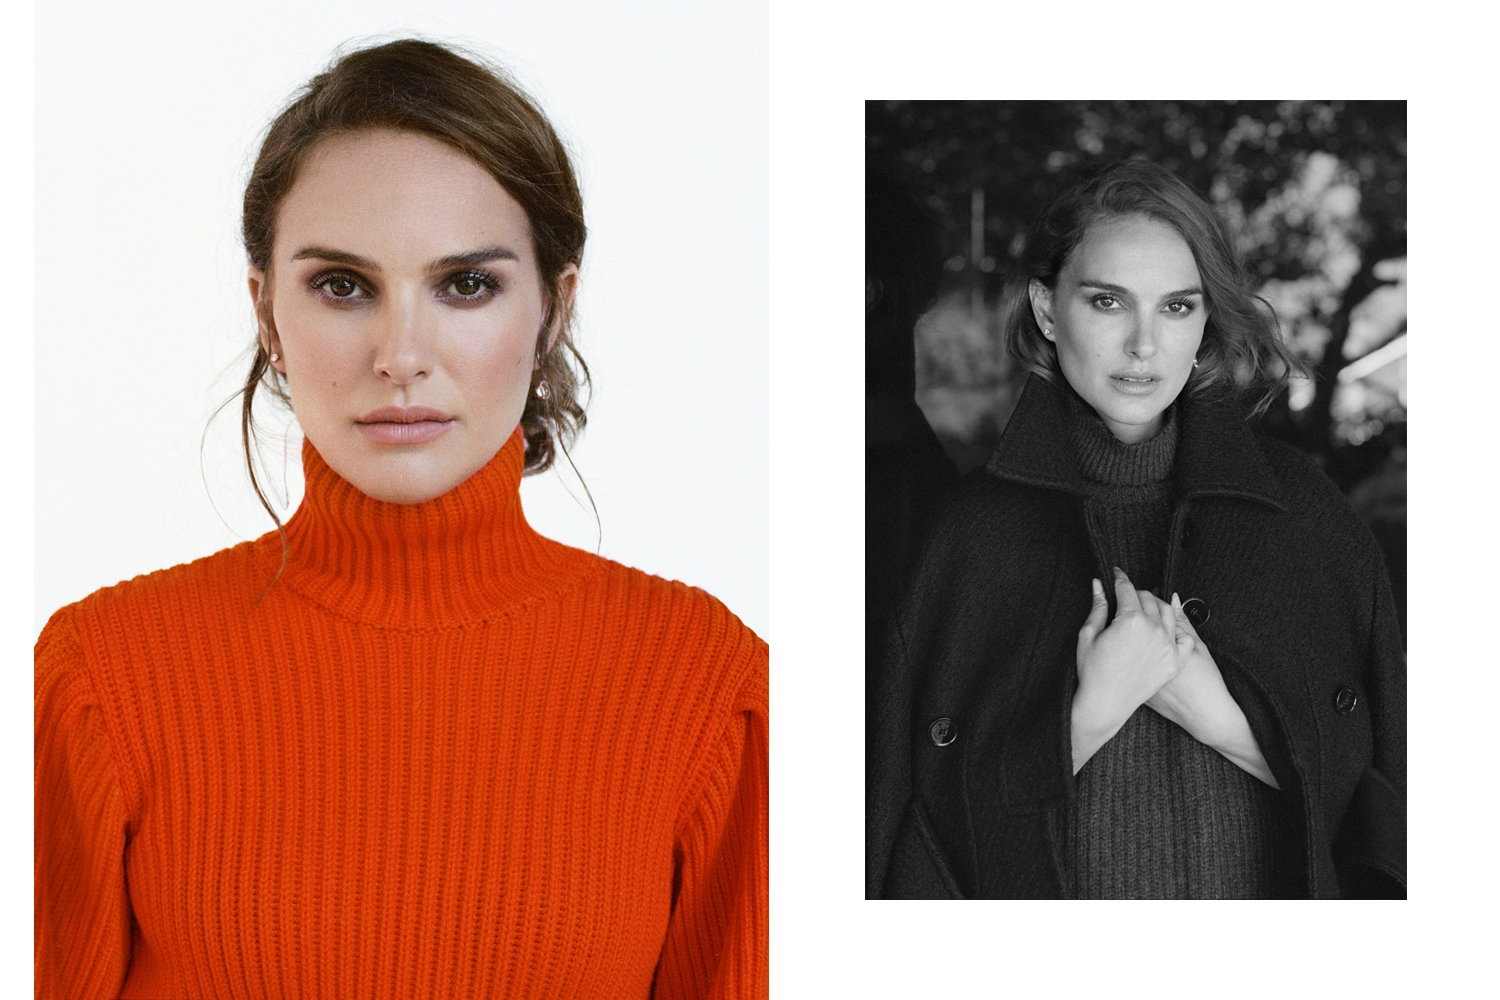 Matt Jones + Natalie Portman